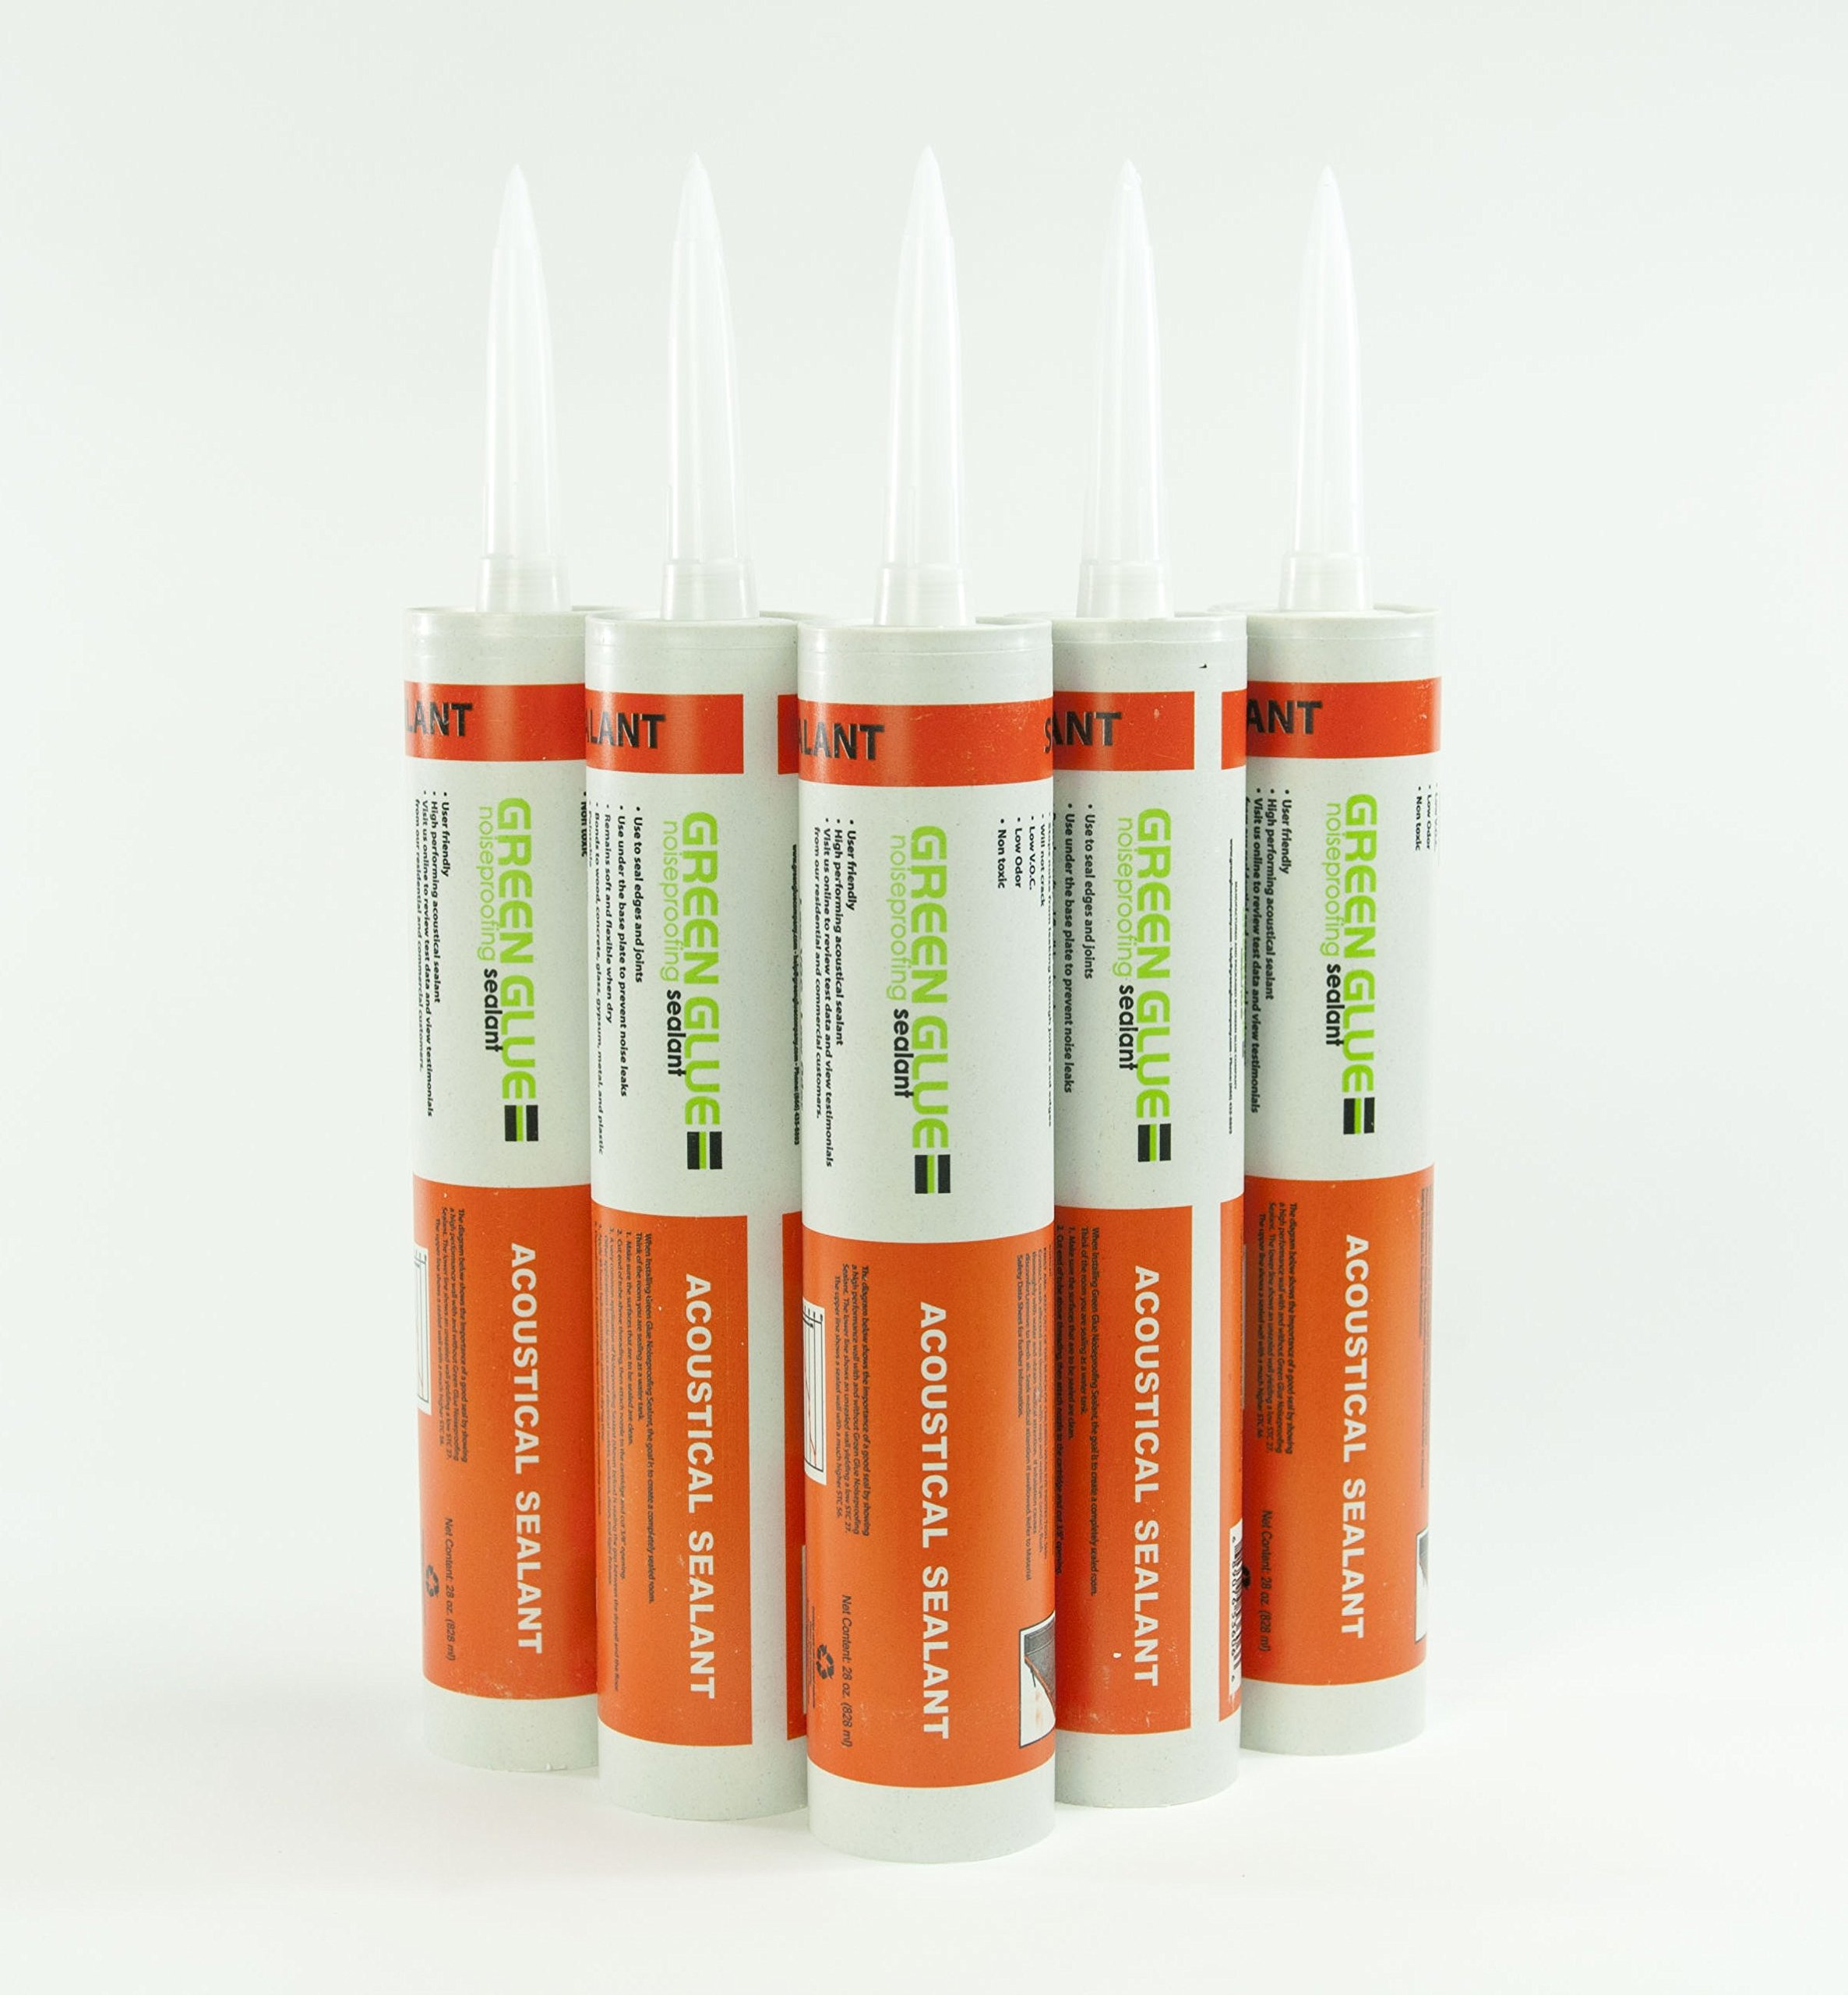 Green Glue Noiseproofing Sealant - 6 Tubes by Green Glue